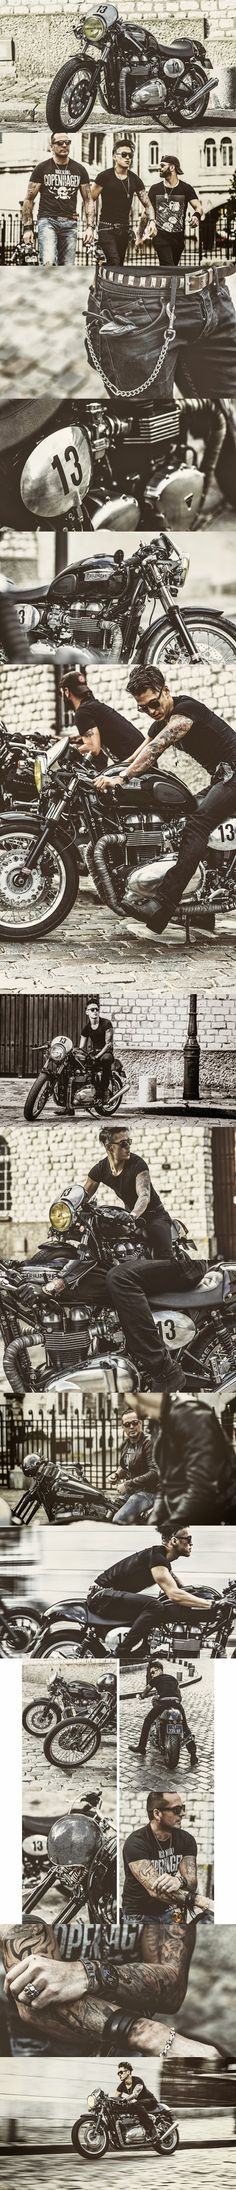 Triumph The Three Horsemen Men's Bike Series July 2014https://www.behance.net/gallery/The-Three-Horsemen/12195489 --- caferacer #motorcycles #motos | caferacerpasion.com Más Más